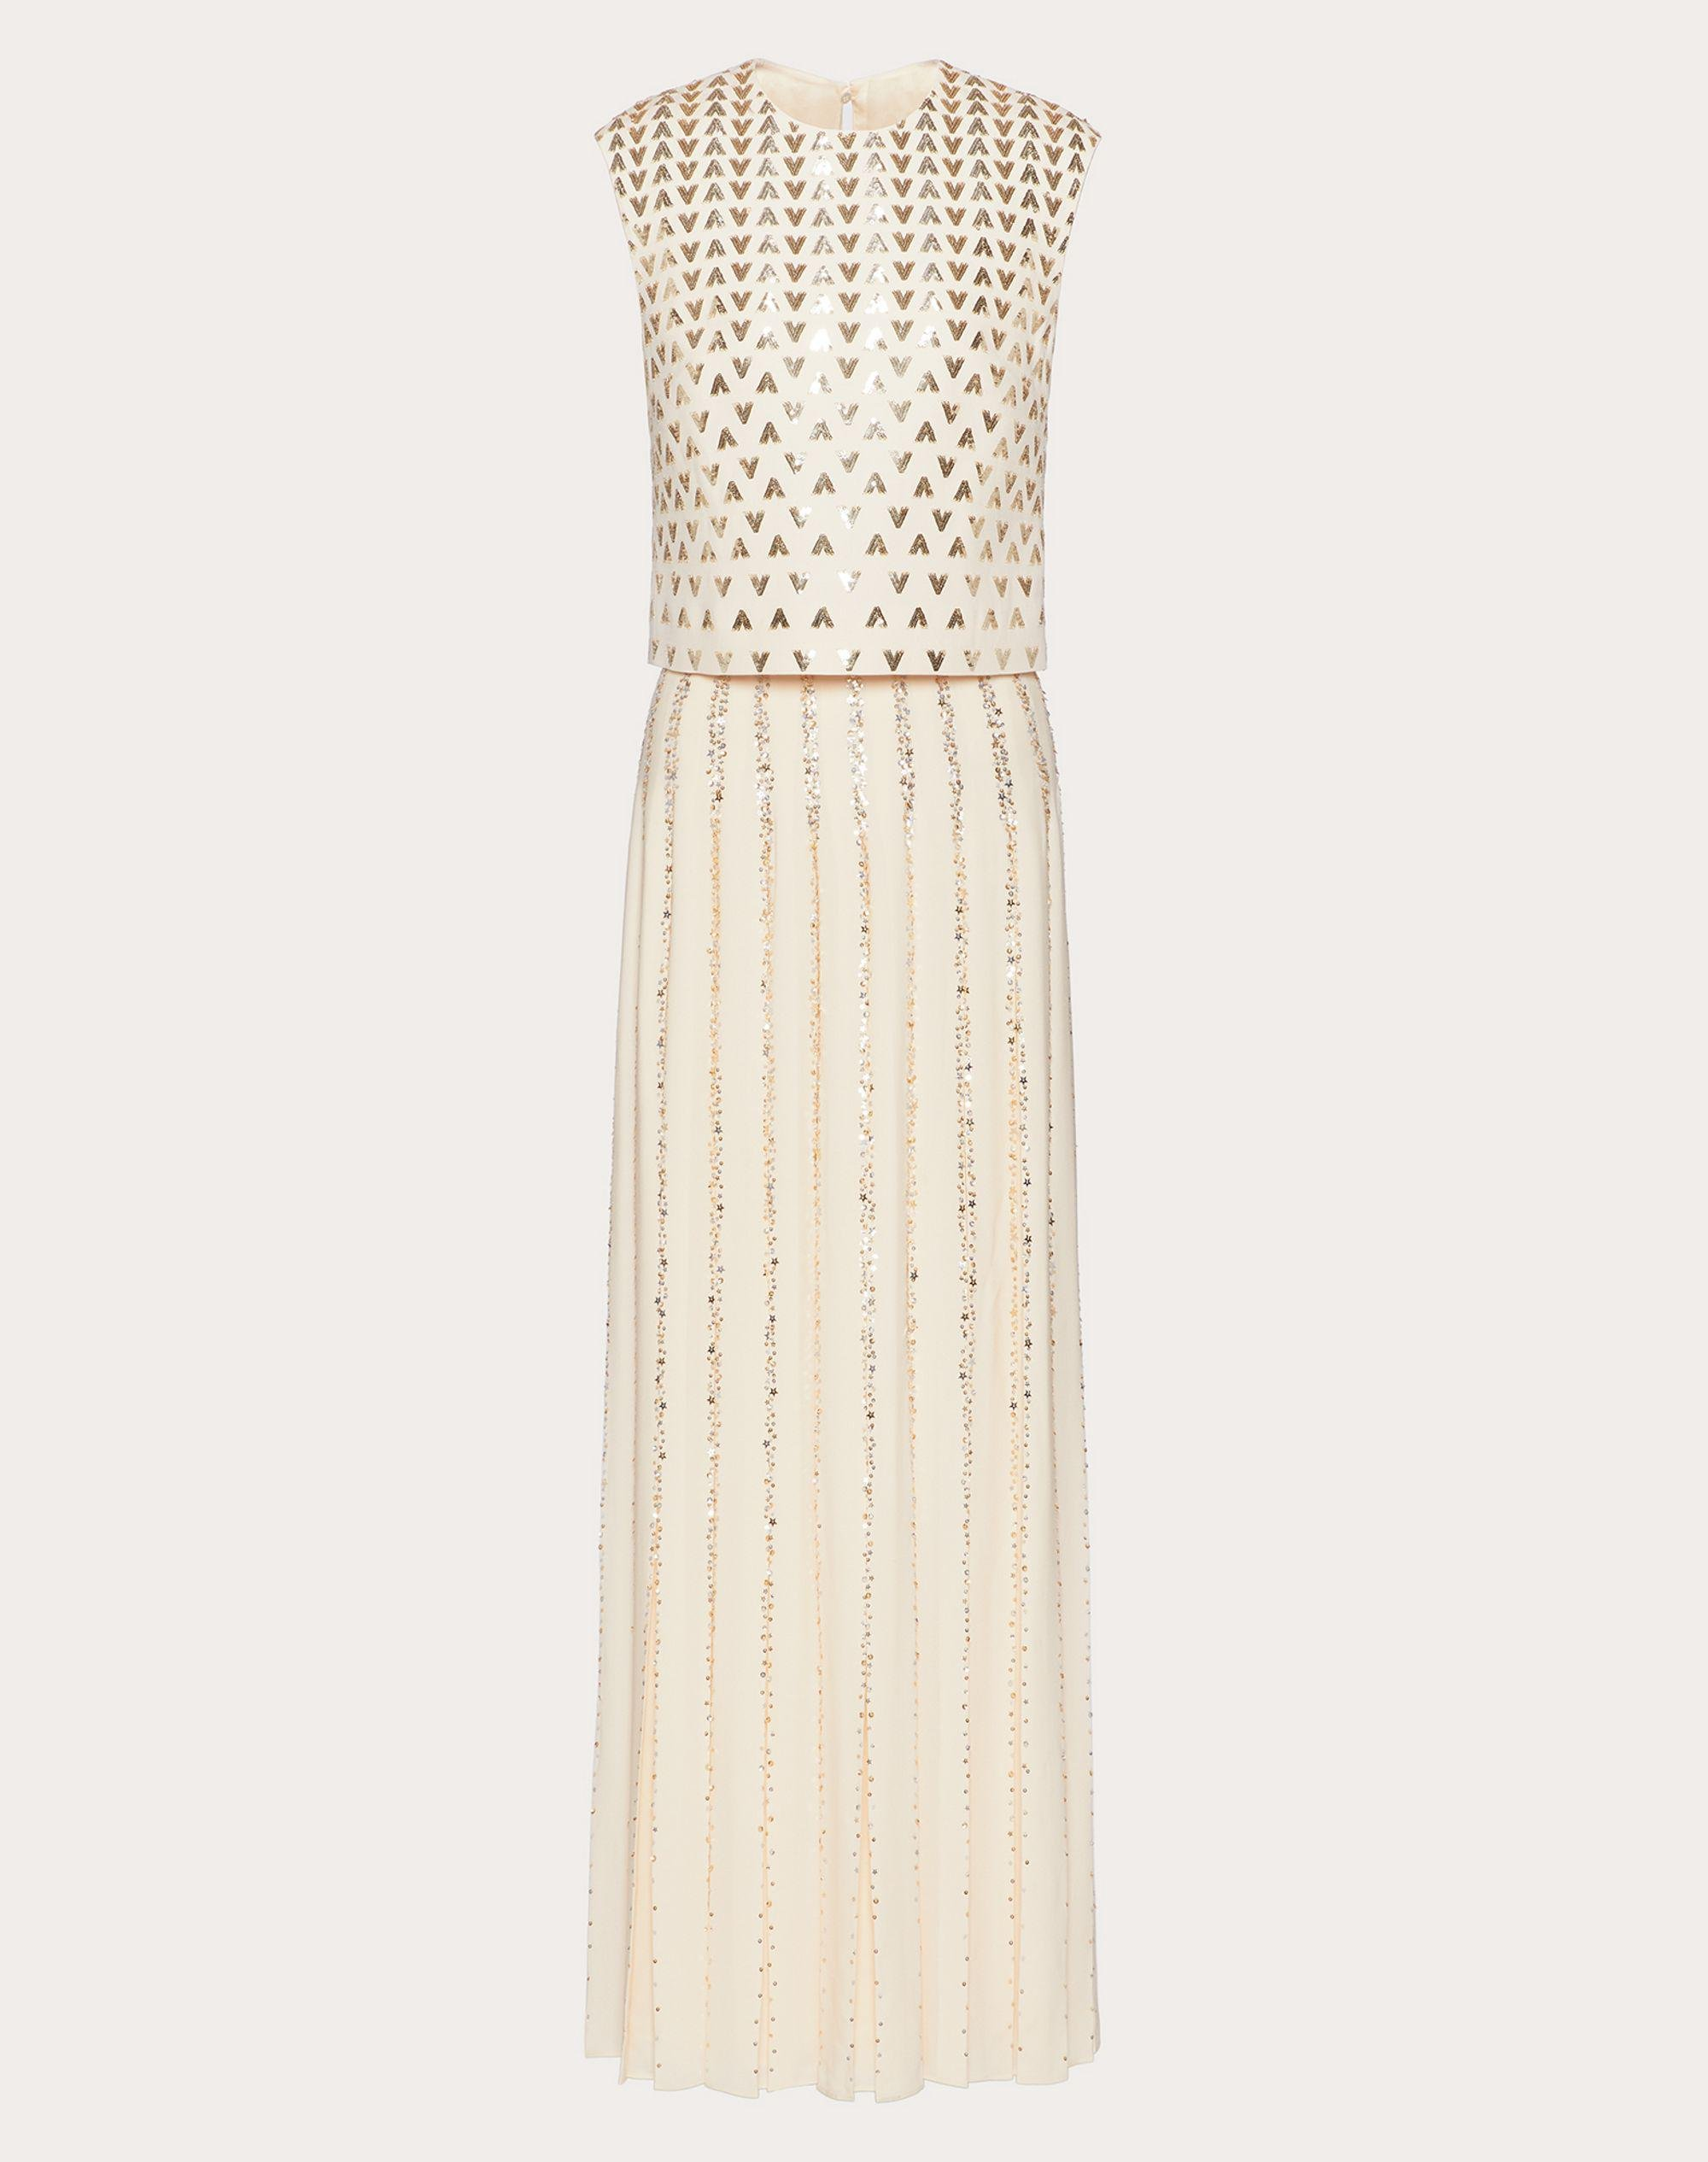 EMBROIDERED GEORGETTE EVENING DRESS 4